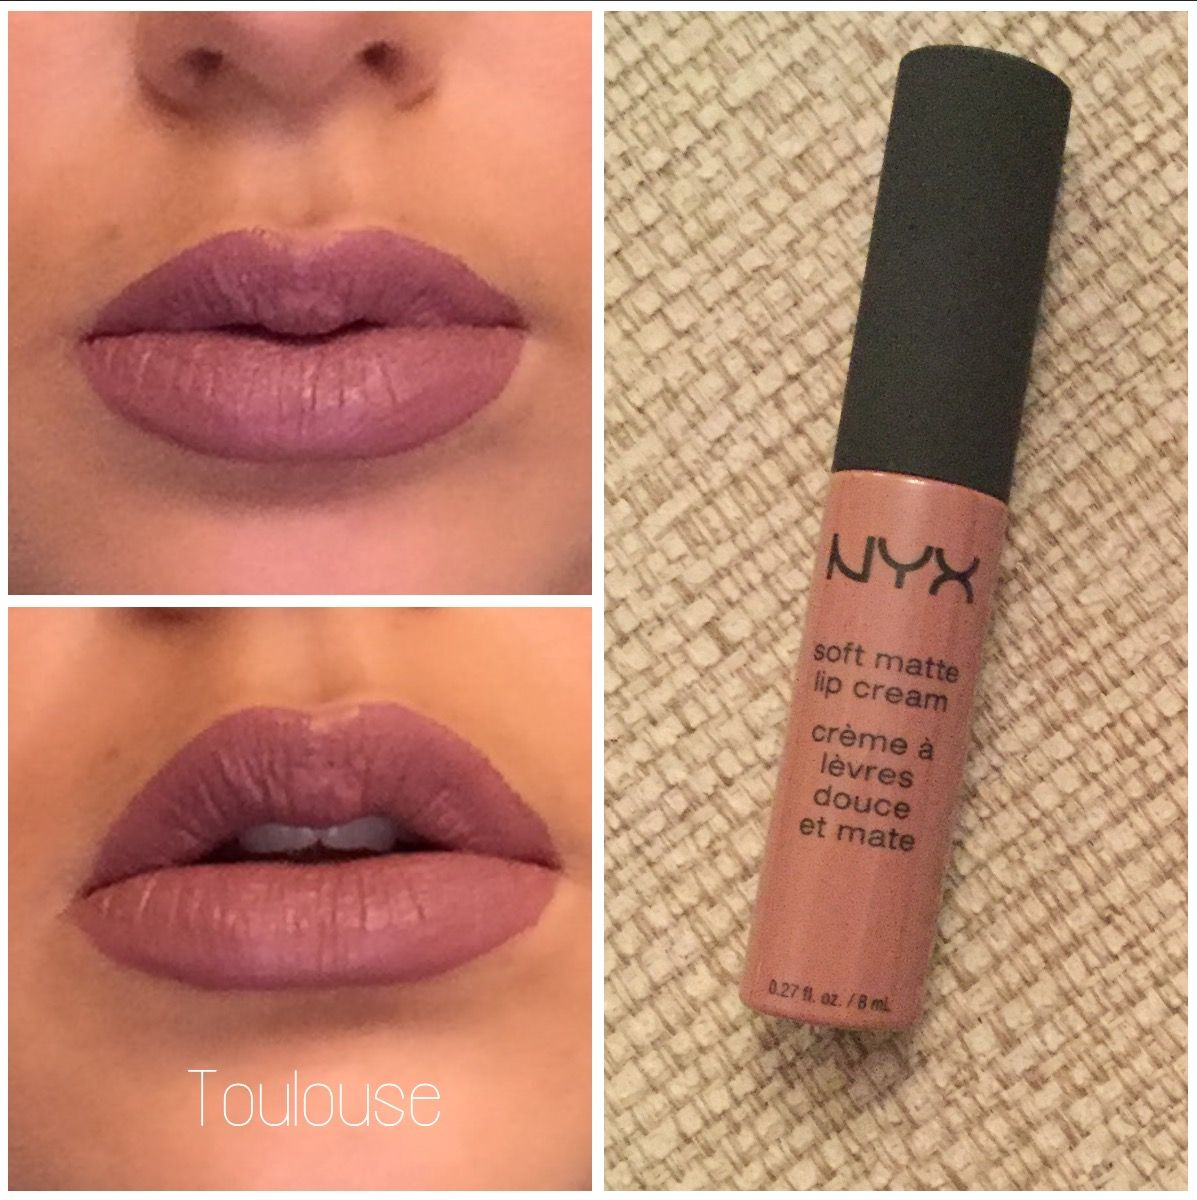 Nyx Soft Matte Lip Cream Toulouse Make Up In 2019 Nyx Soft